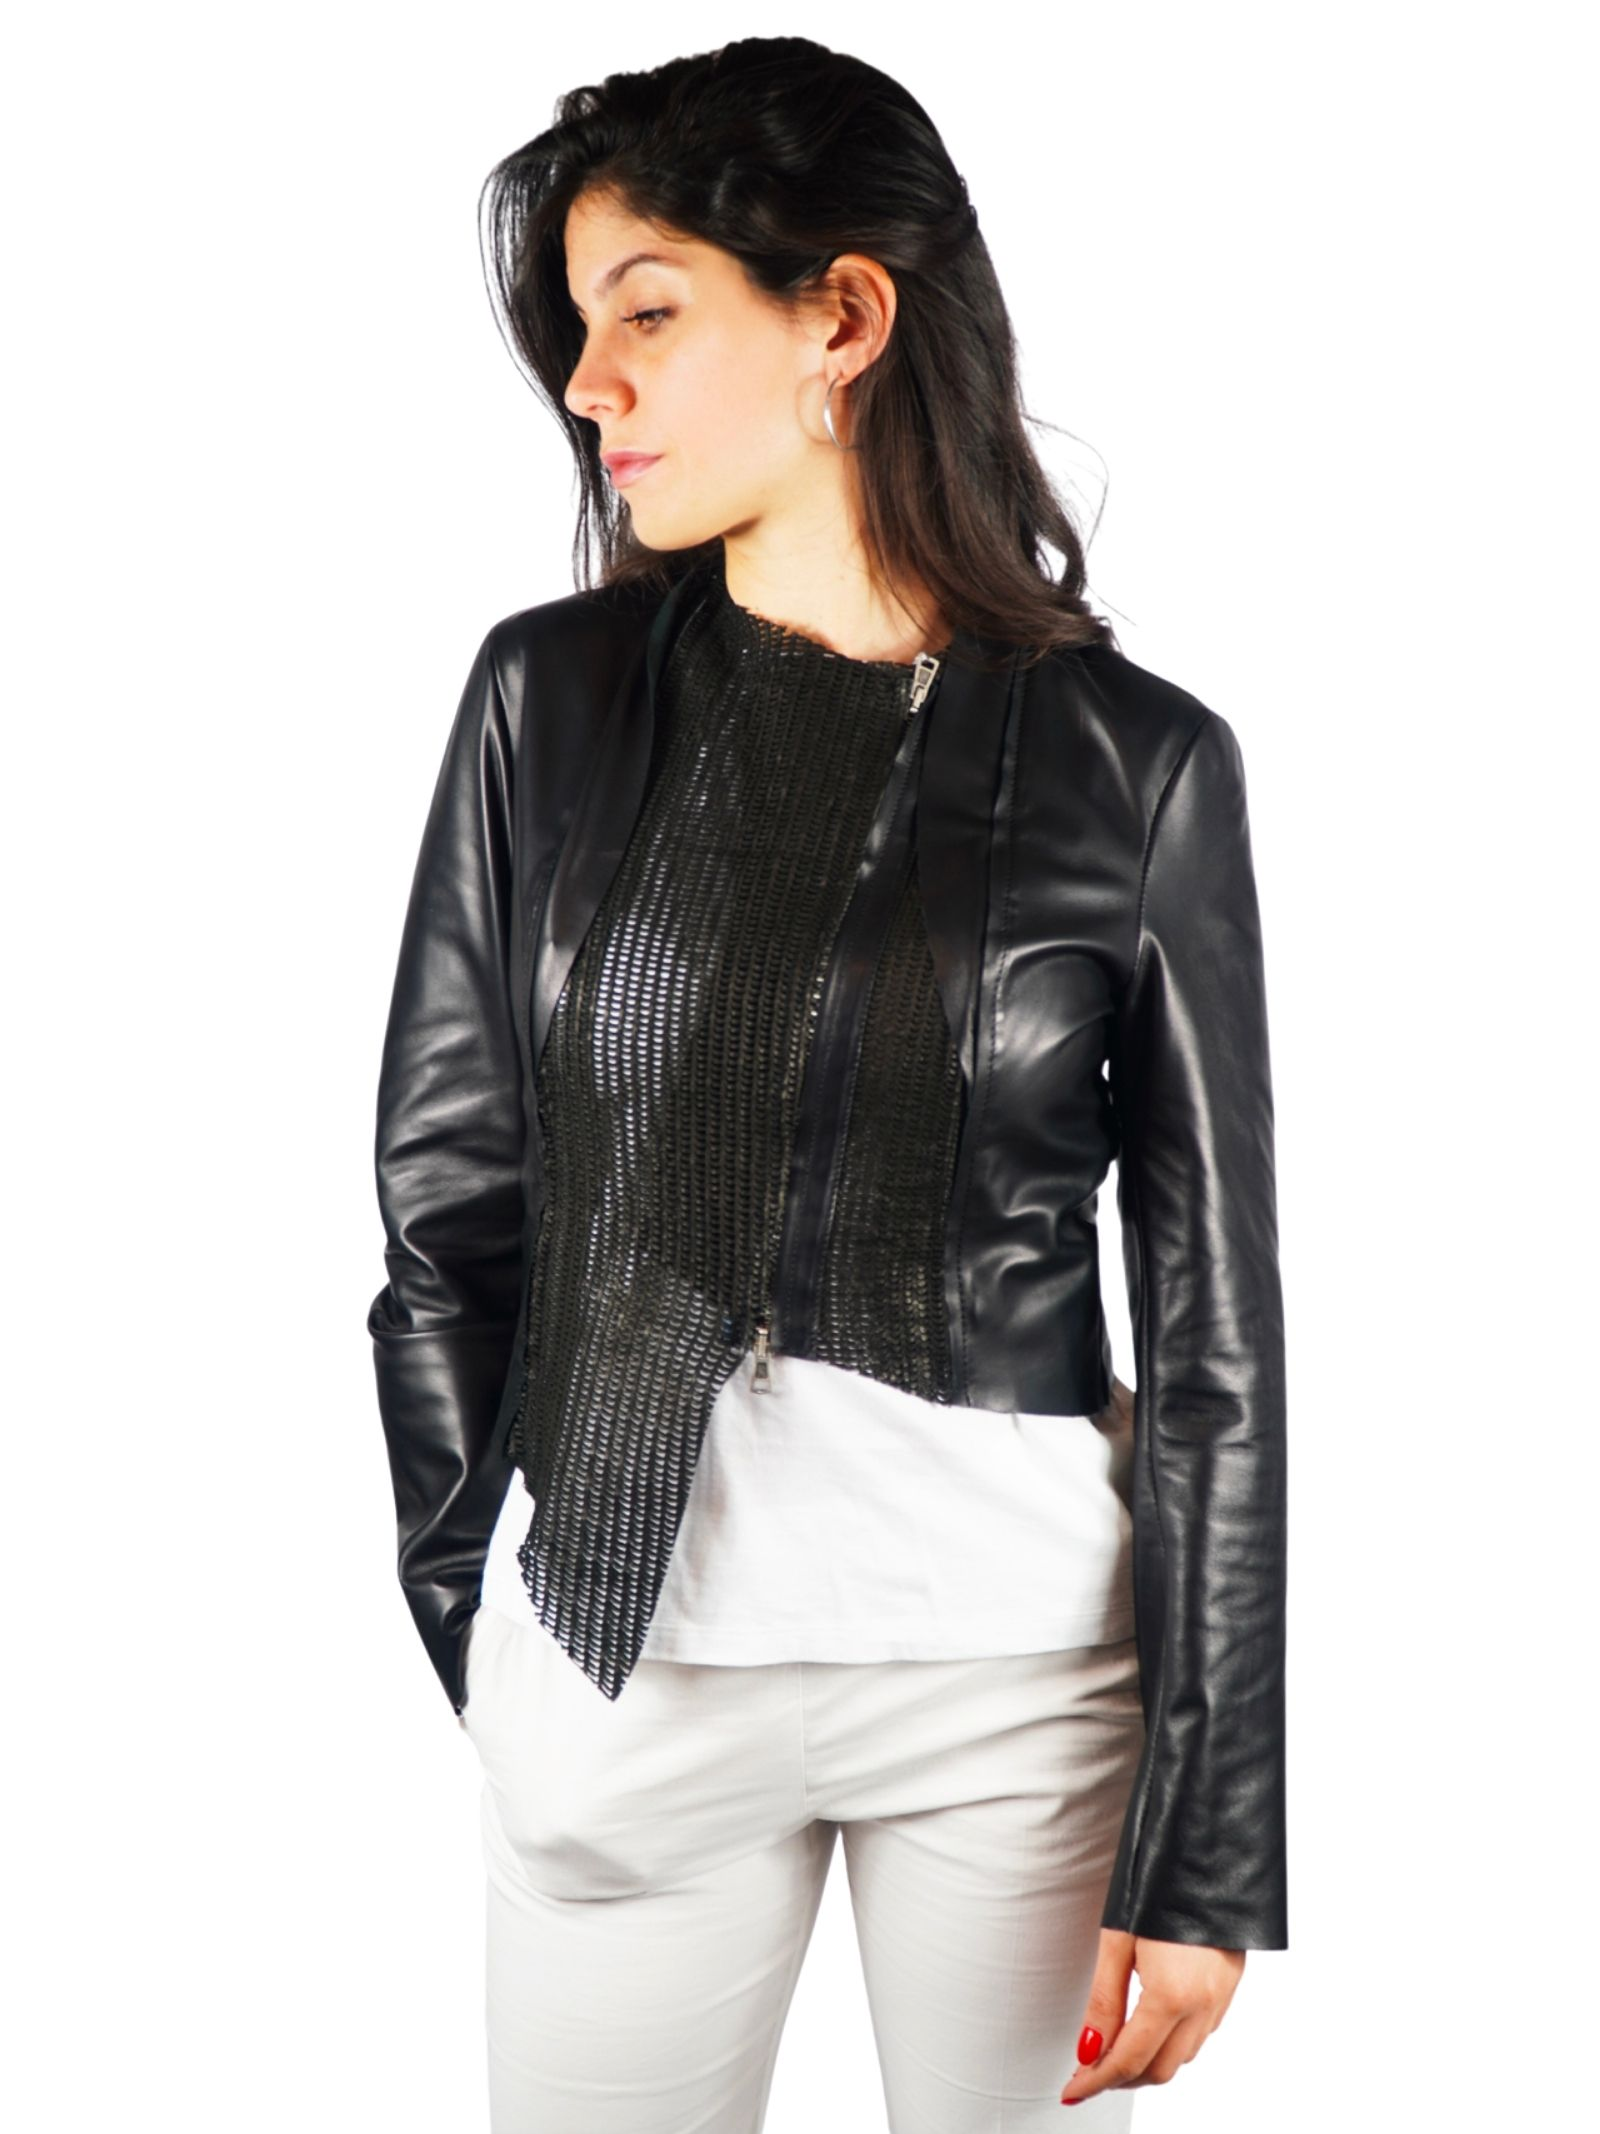 Women's Clothing Bolerino Jacket in Black Leather with Tone Leather Insert on the Front Spatarella |  | 2154001